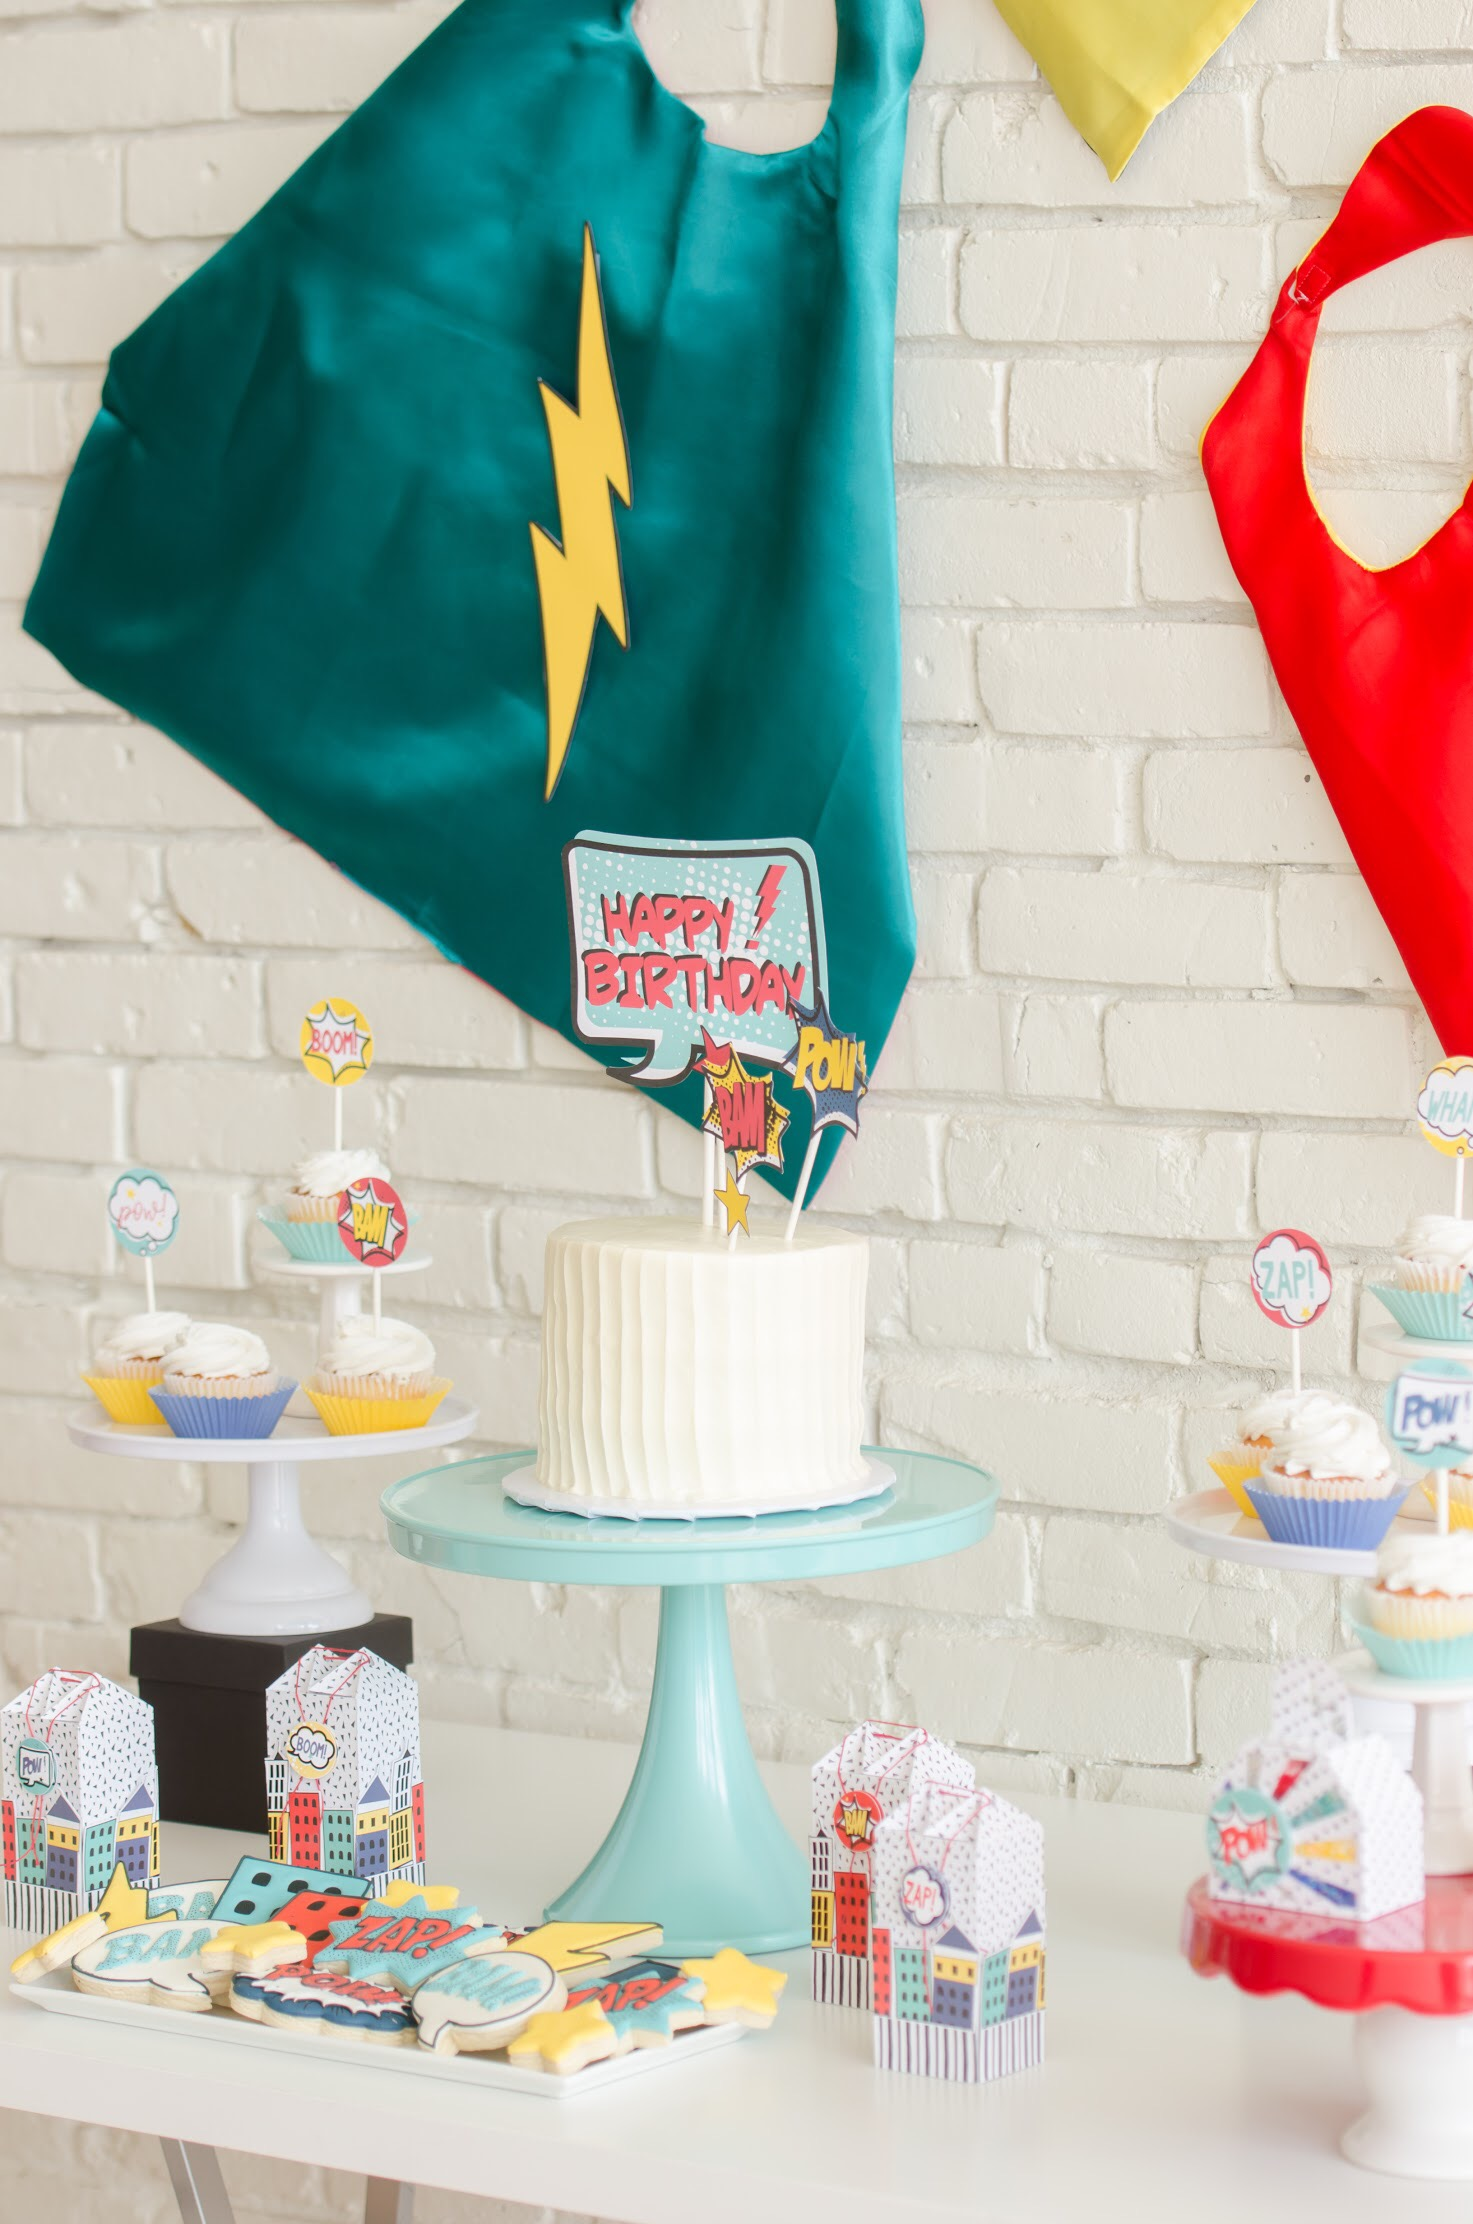 Cute comic book superhero party ideas from Mint Event Design